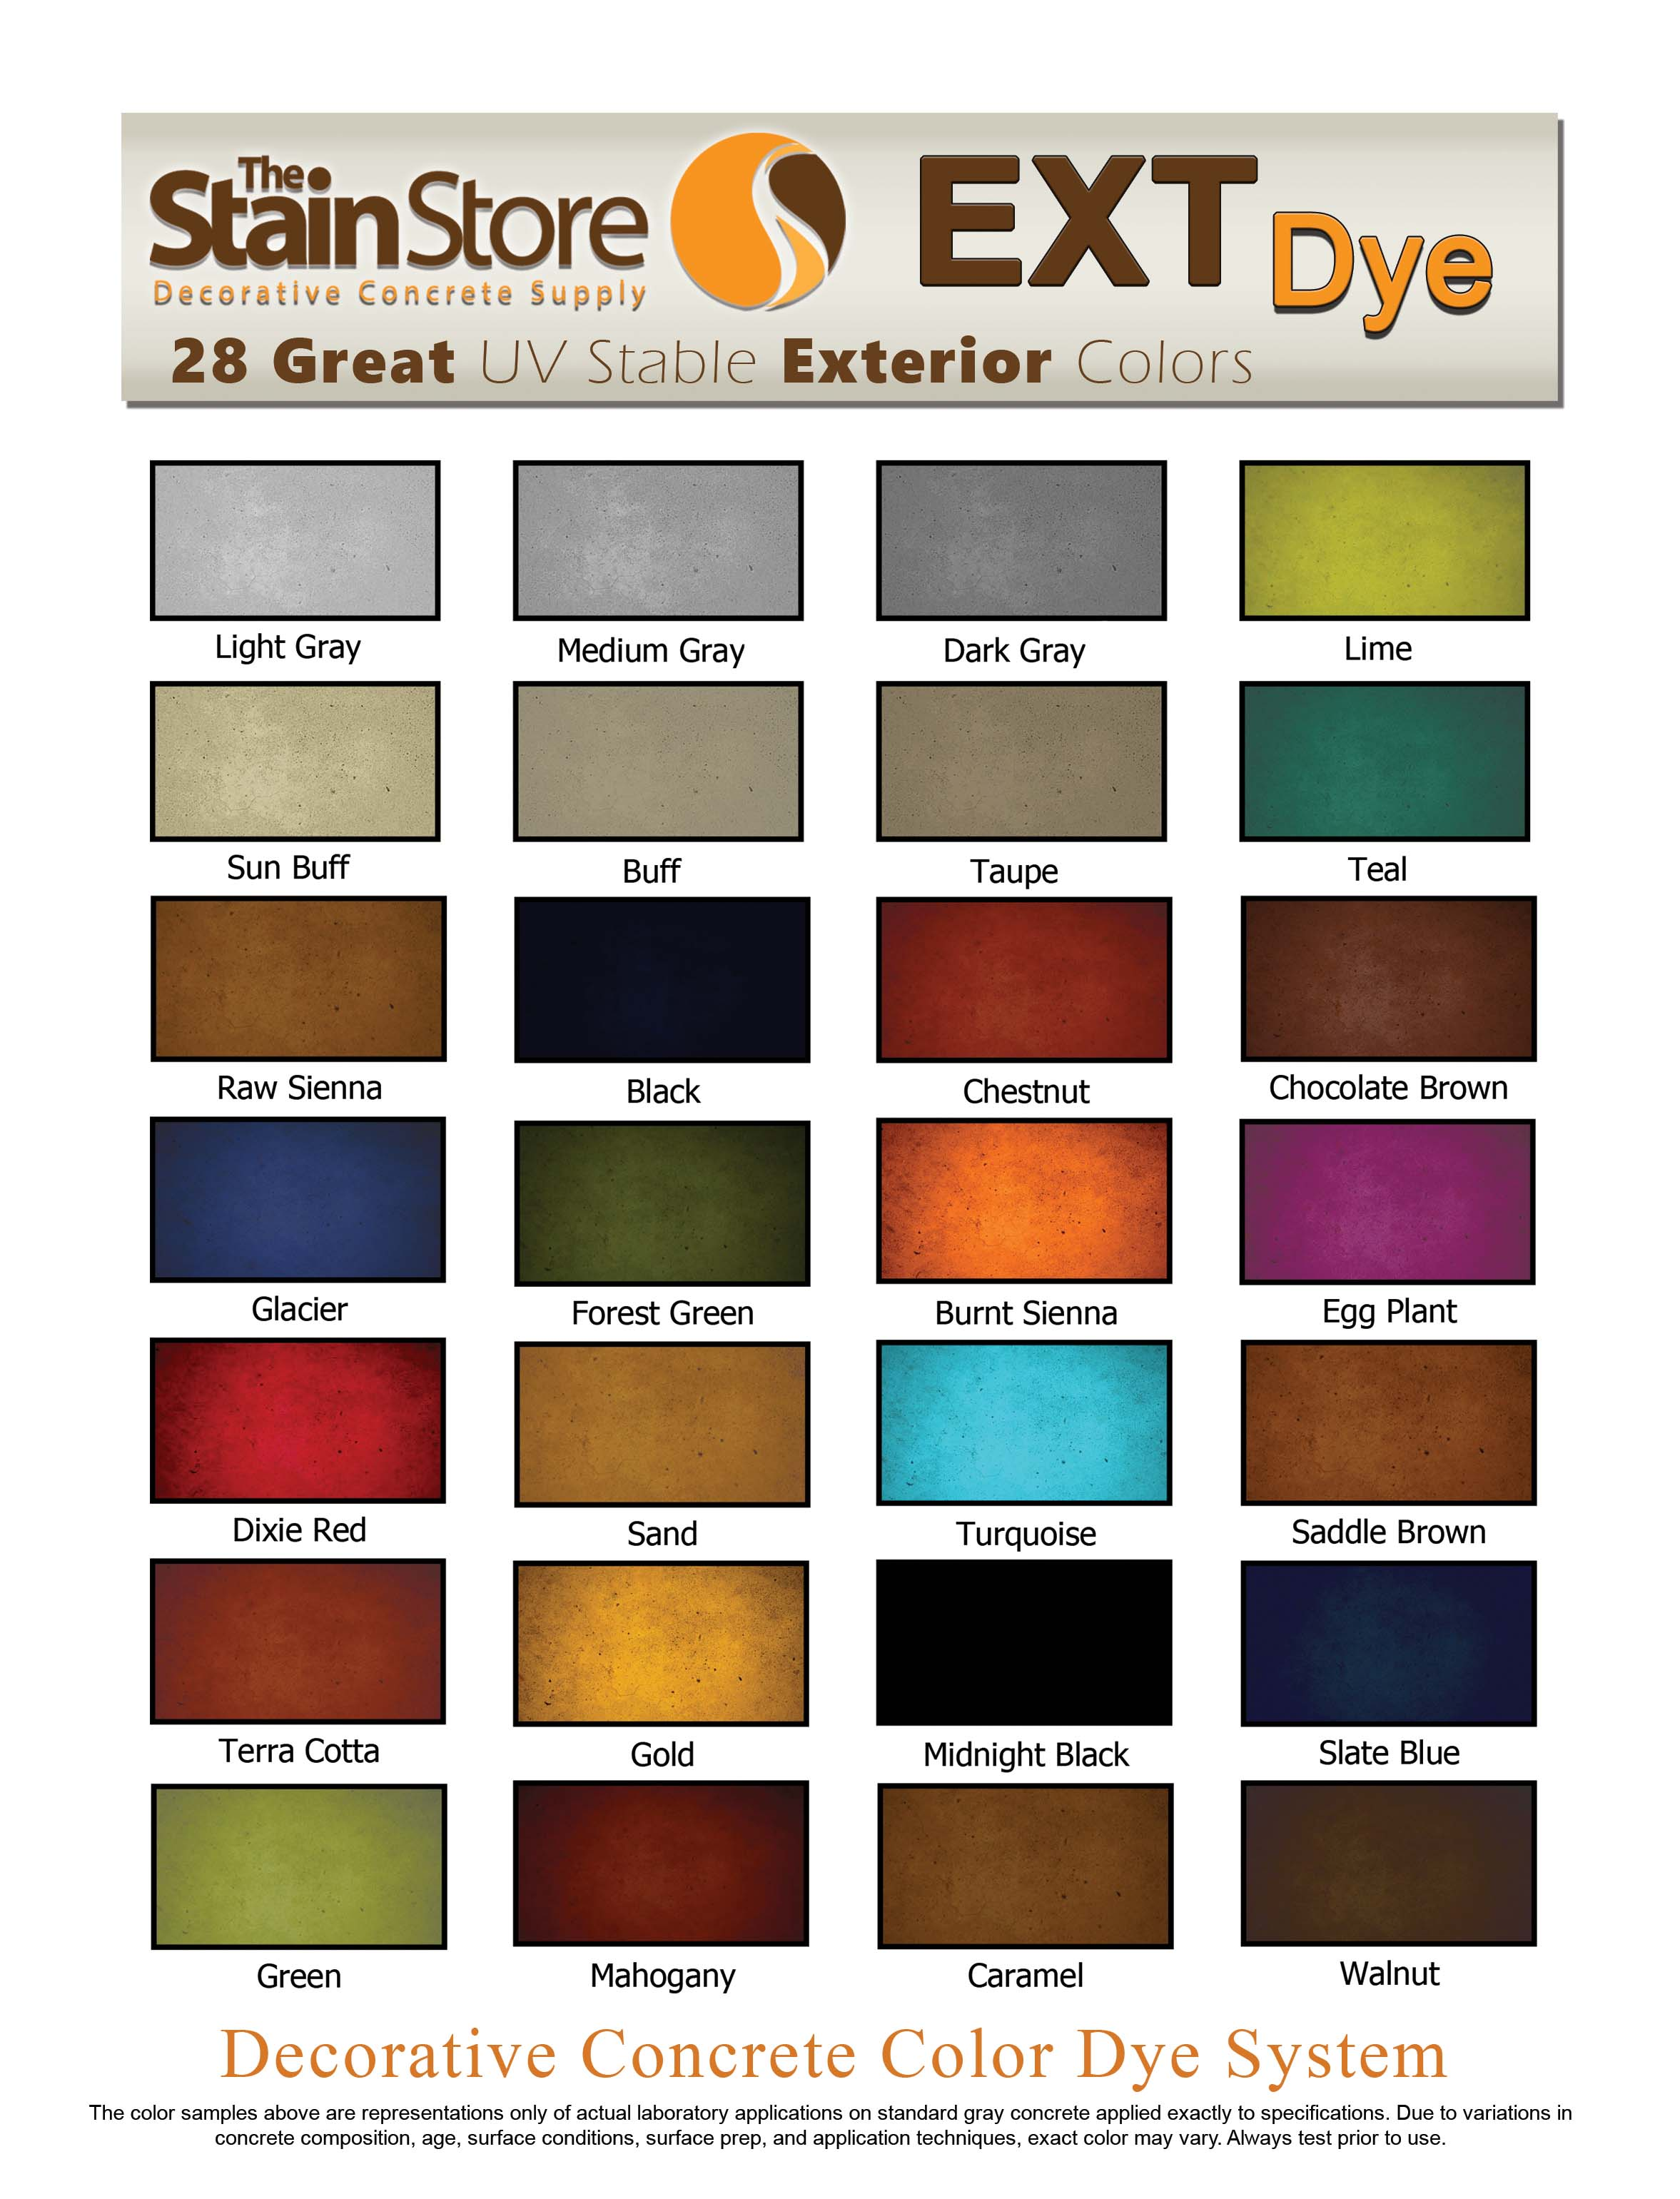 uv-exterior-dye-colors